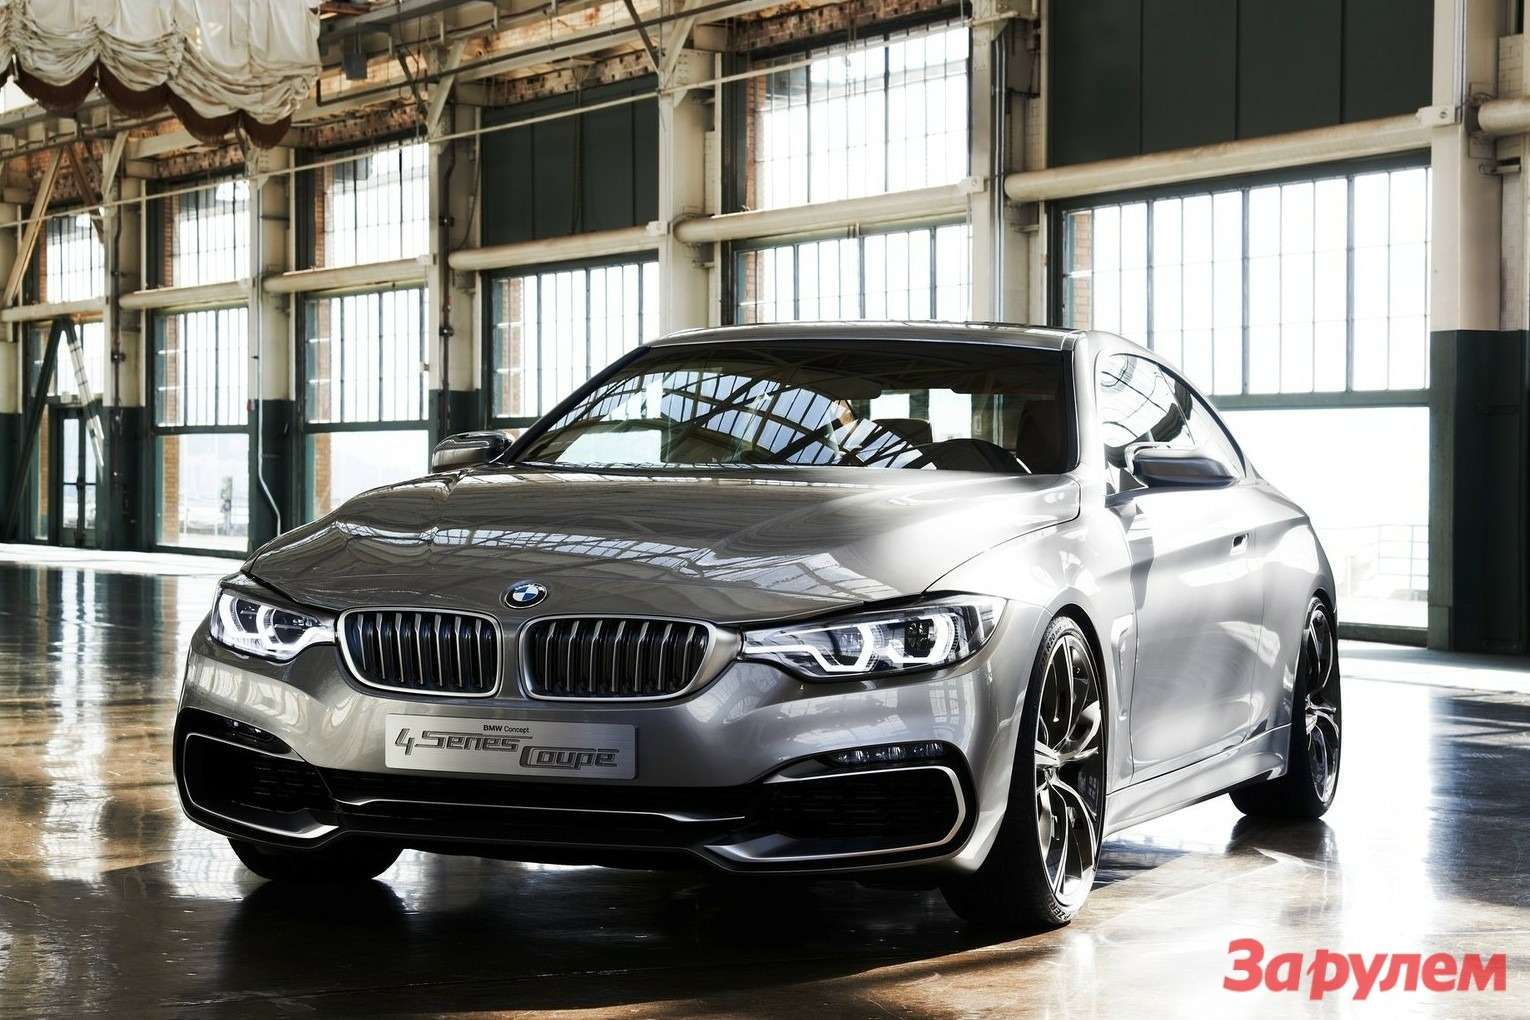 BMW-4-Series_Coupe_Concept_2013_1600x1200_wallpaper_04